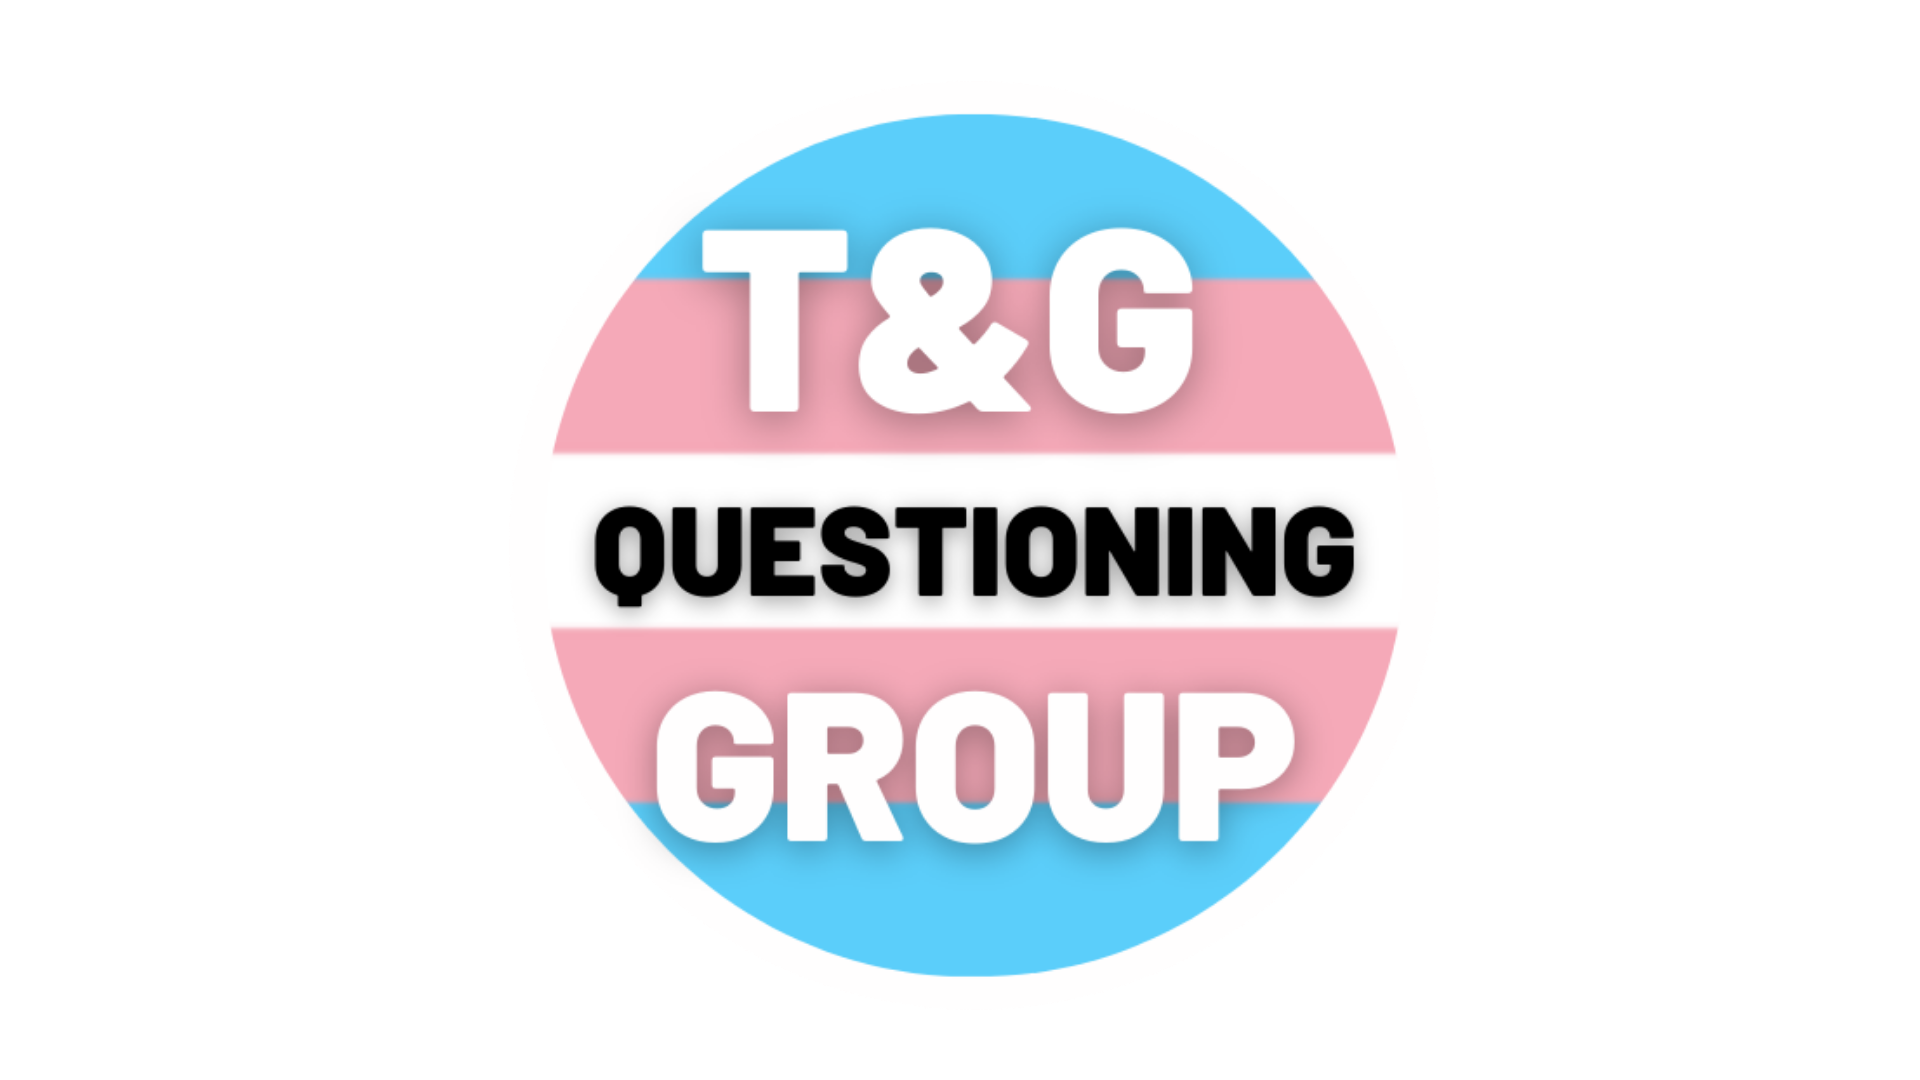 The T&G Questioning Group logo featuring pink and blue stripes